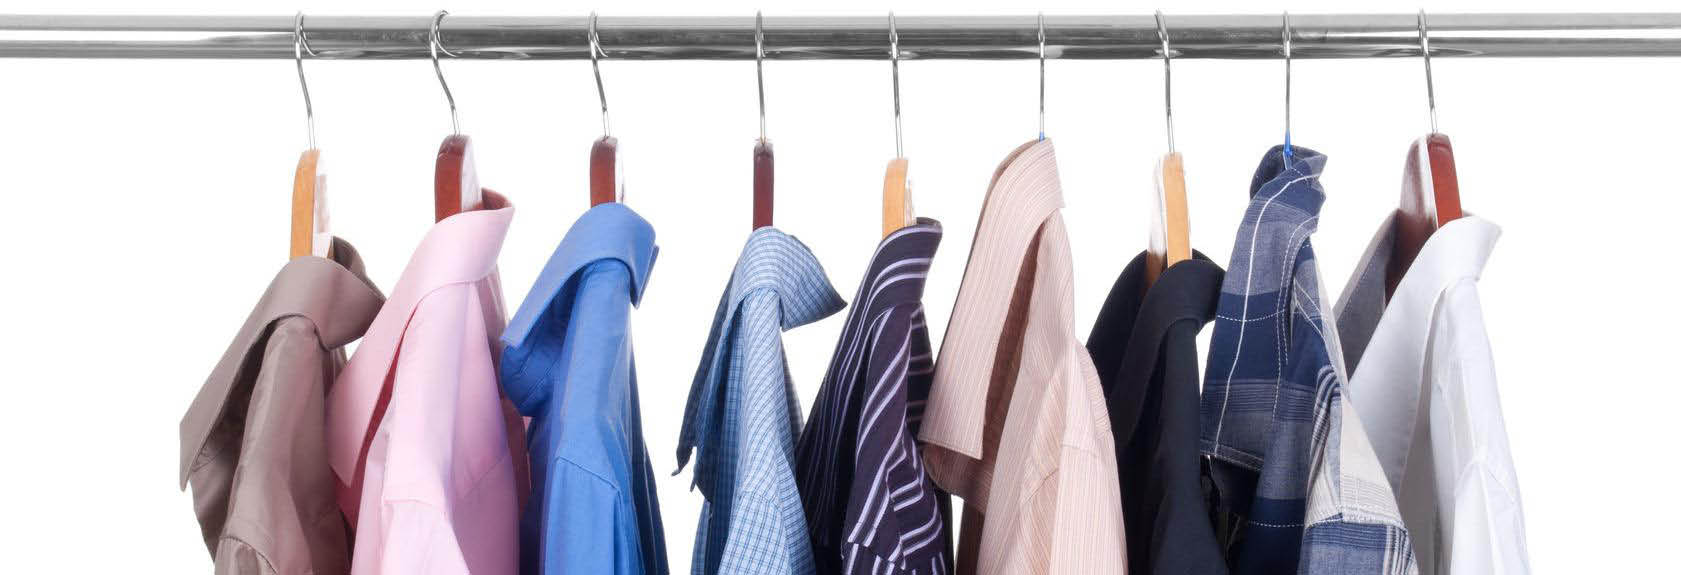 cleaners near me dry cleaning laguna niguel ca